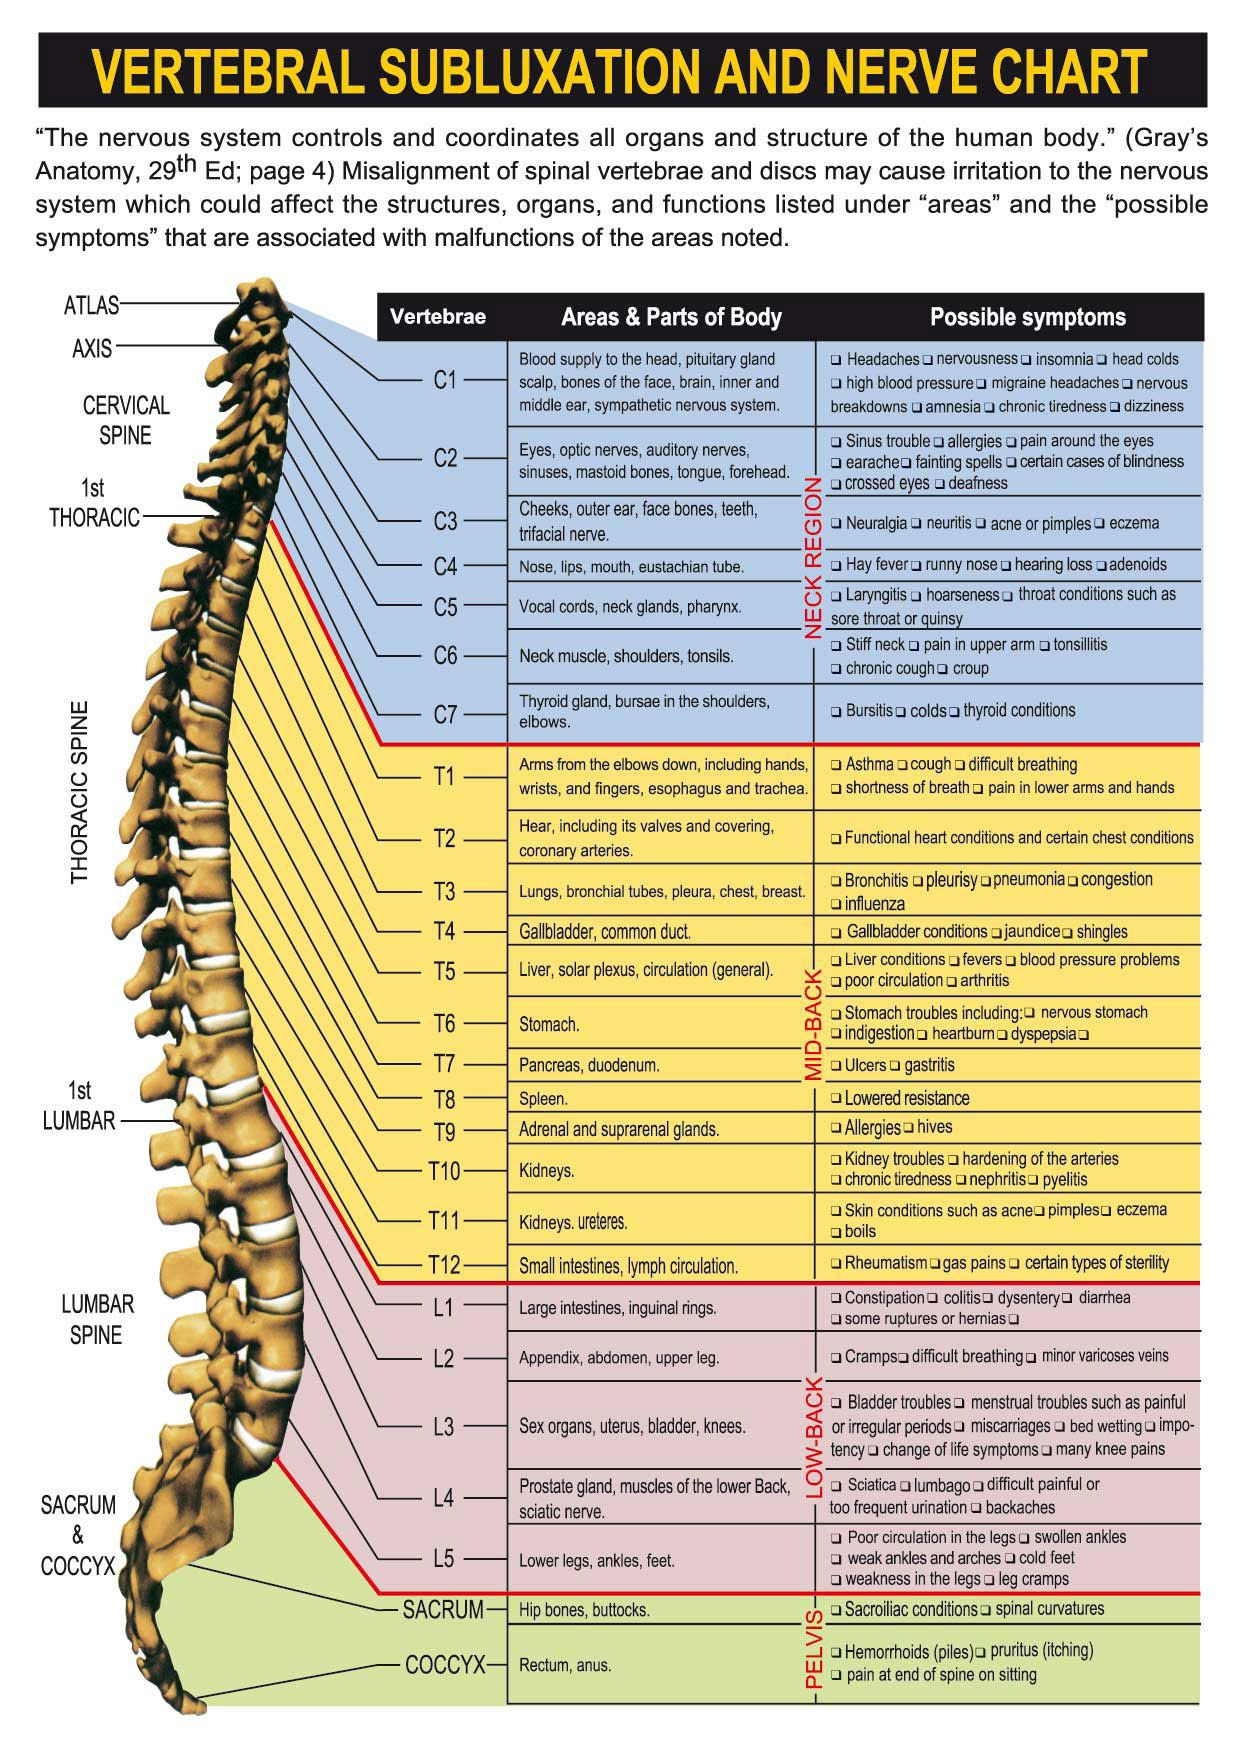 Spinal nerve chart with effects of vertebral subluxations and